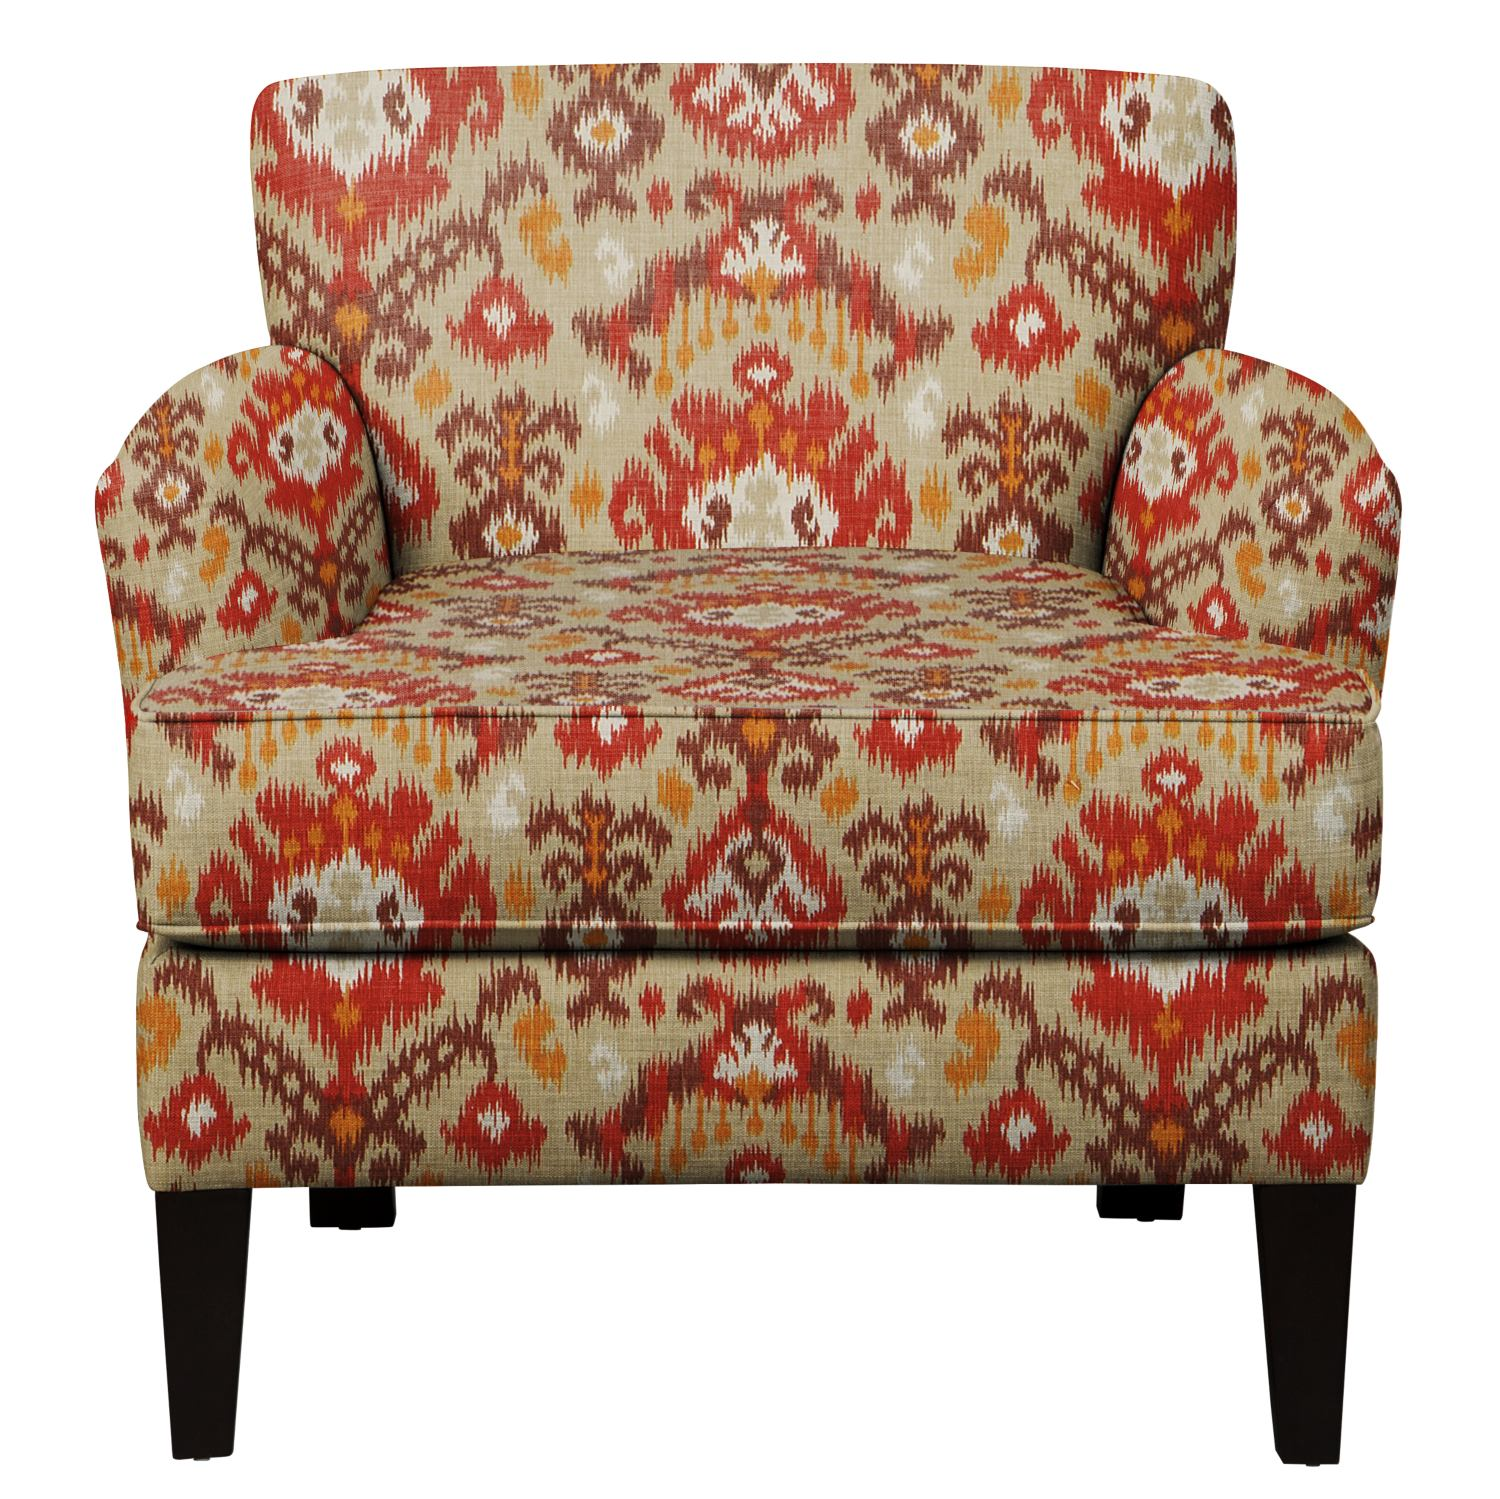 Living Room Furniture - Marcus Chair w/ Blurred Lines Sante Fe Fabric